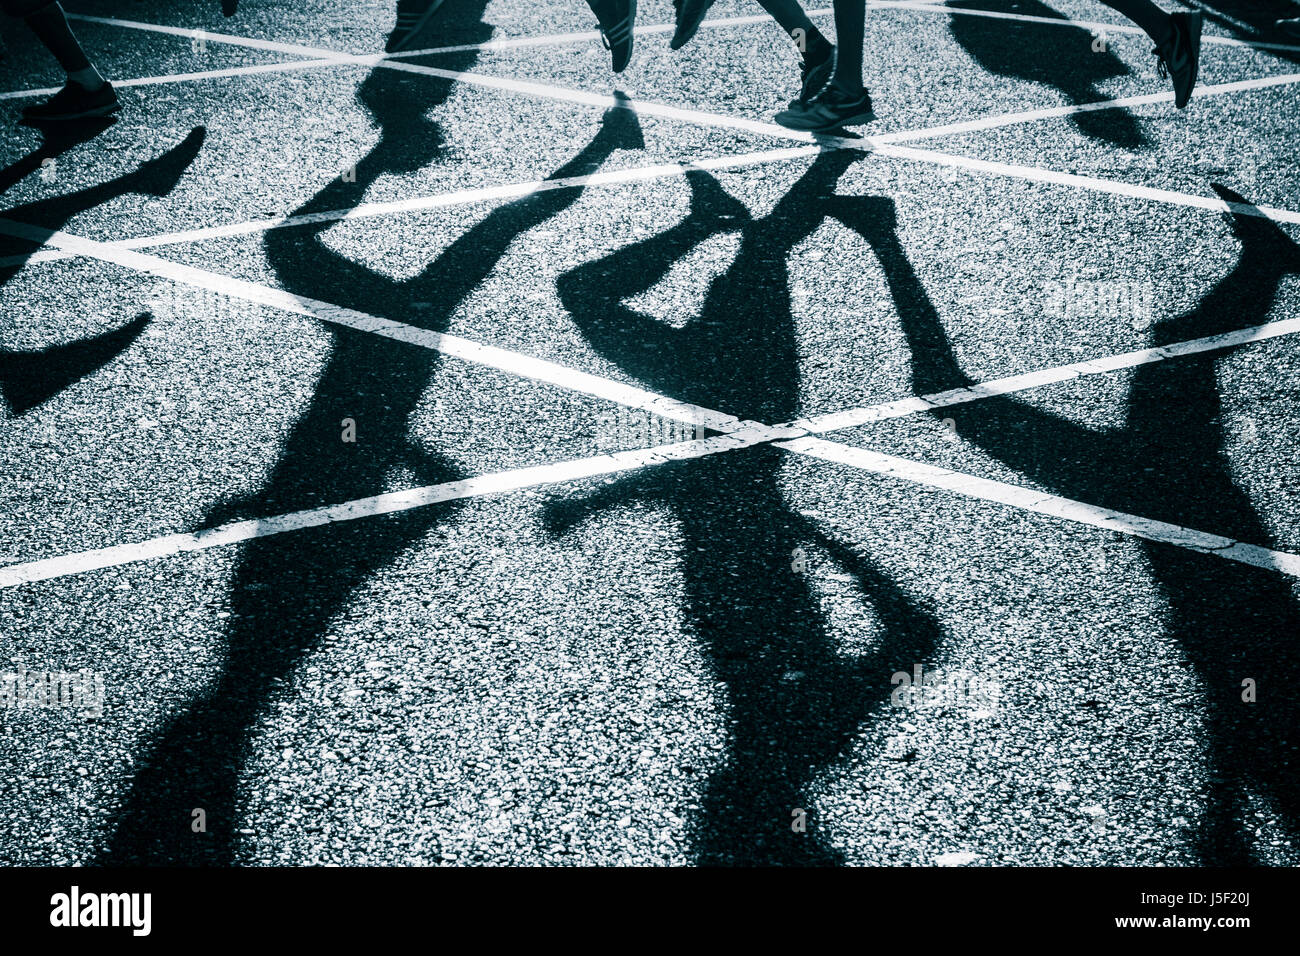 Runners shadows on road during city road race. - Stock Image